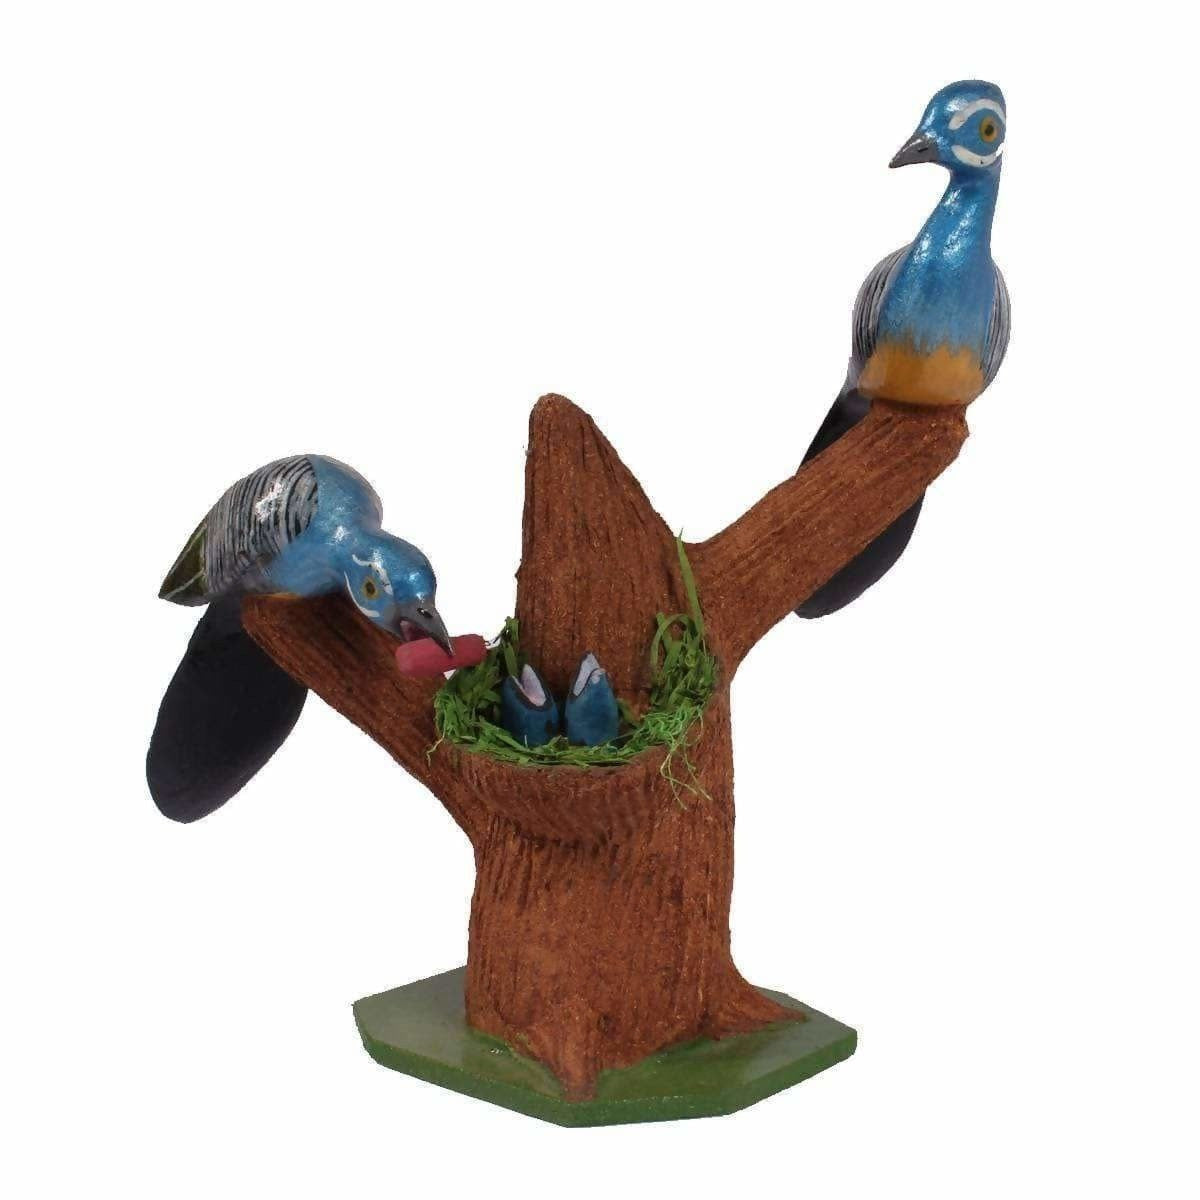 Two Wooden Birds Along with Nest and Baby Birds